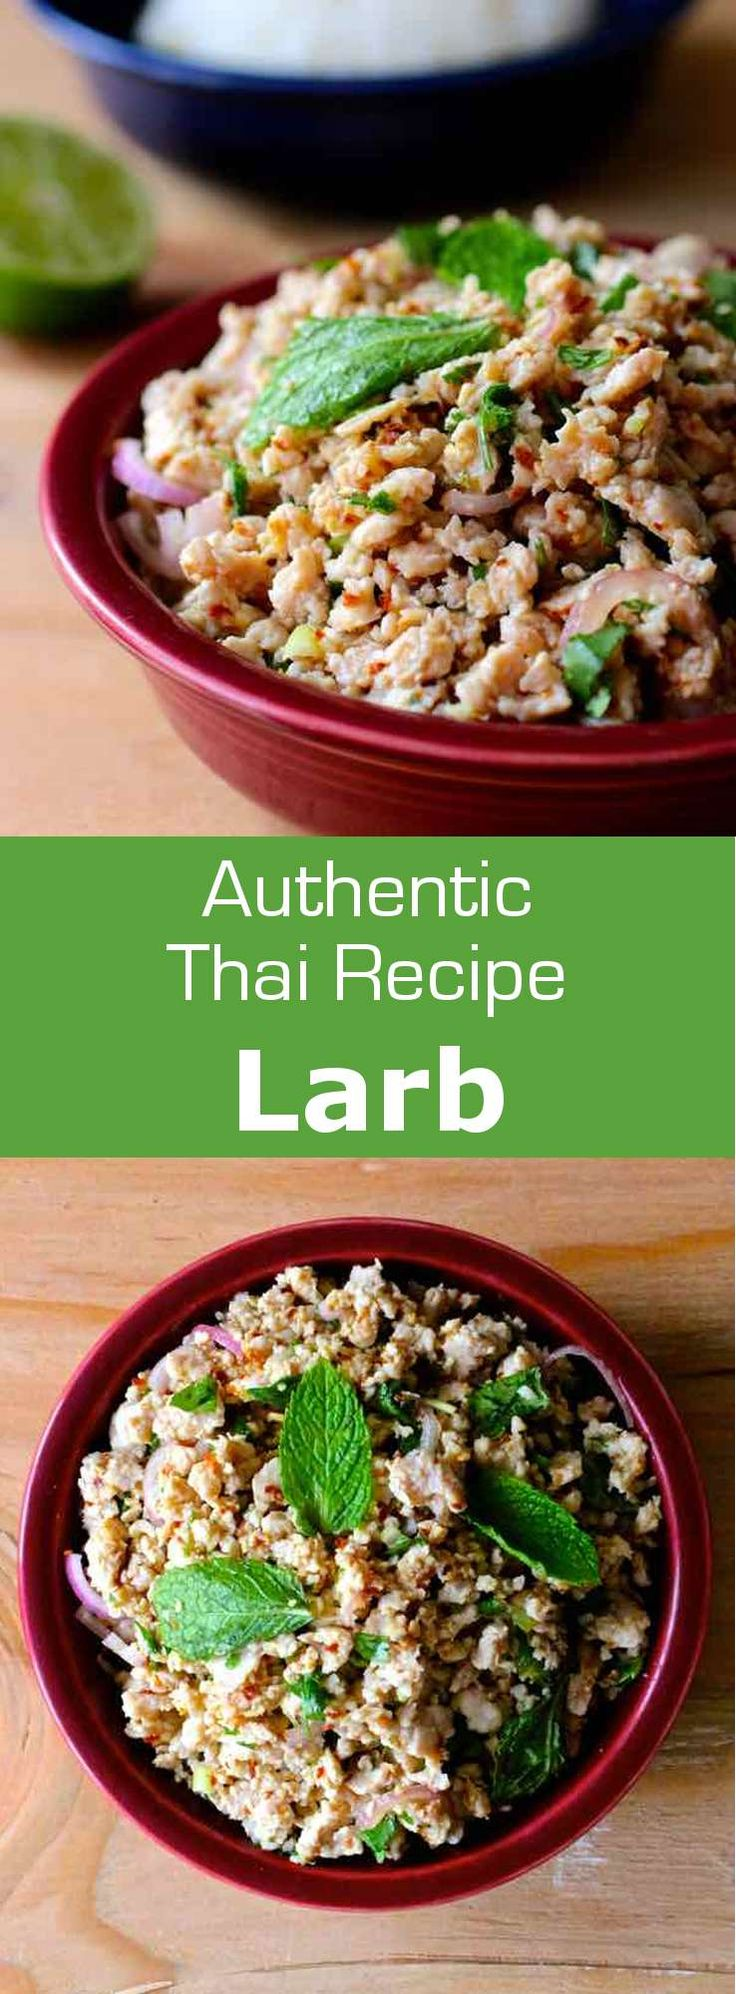 Larb is a delicious Thai and Laotian salad composed of ground meat, lime juice, fish sauce, shallots, herbs, chili powder and toasted ground sticky rice.